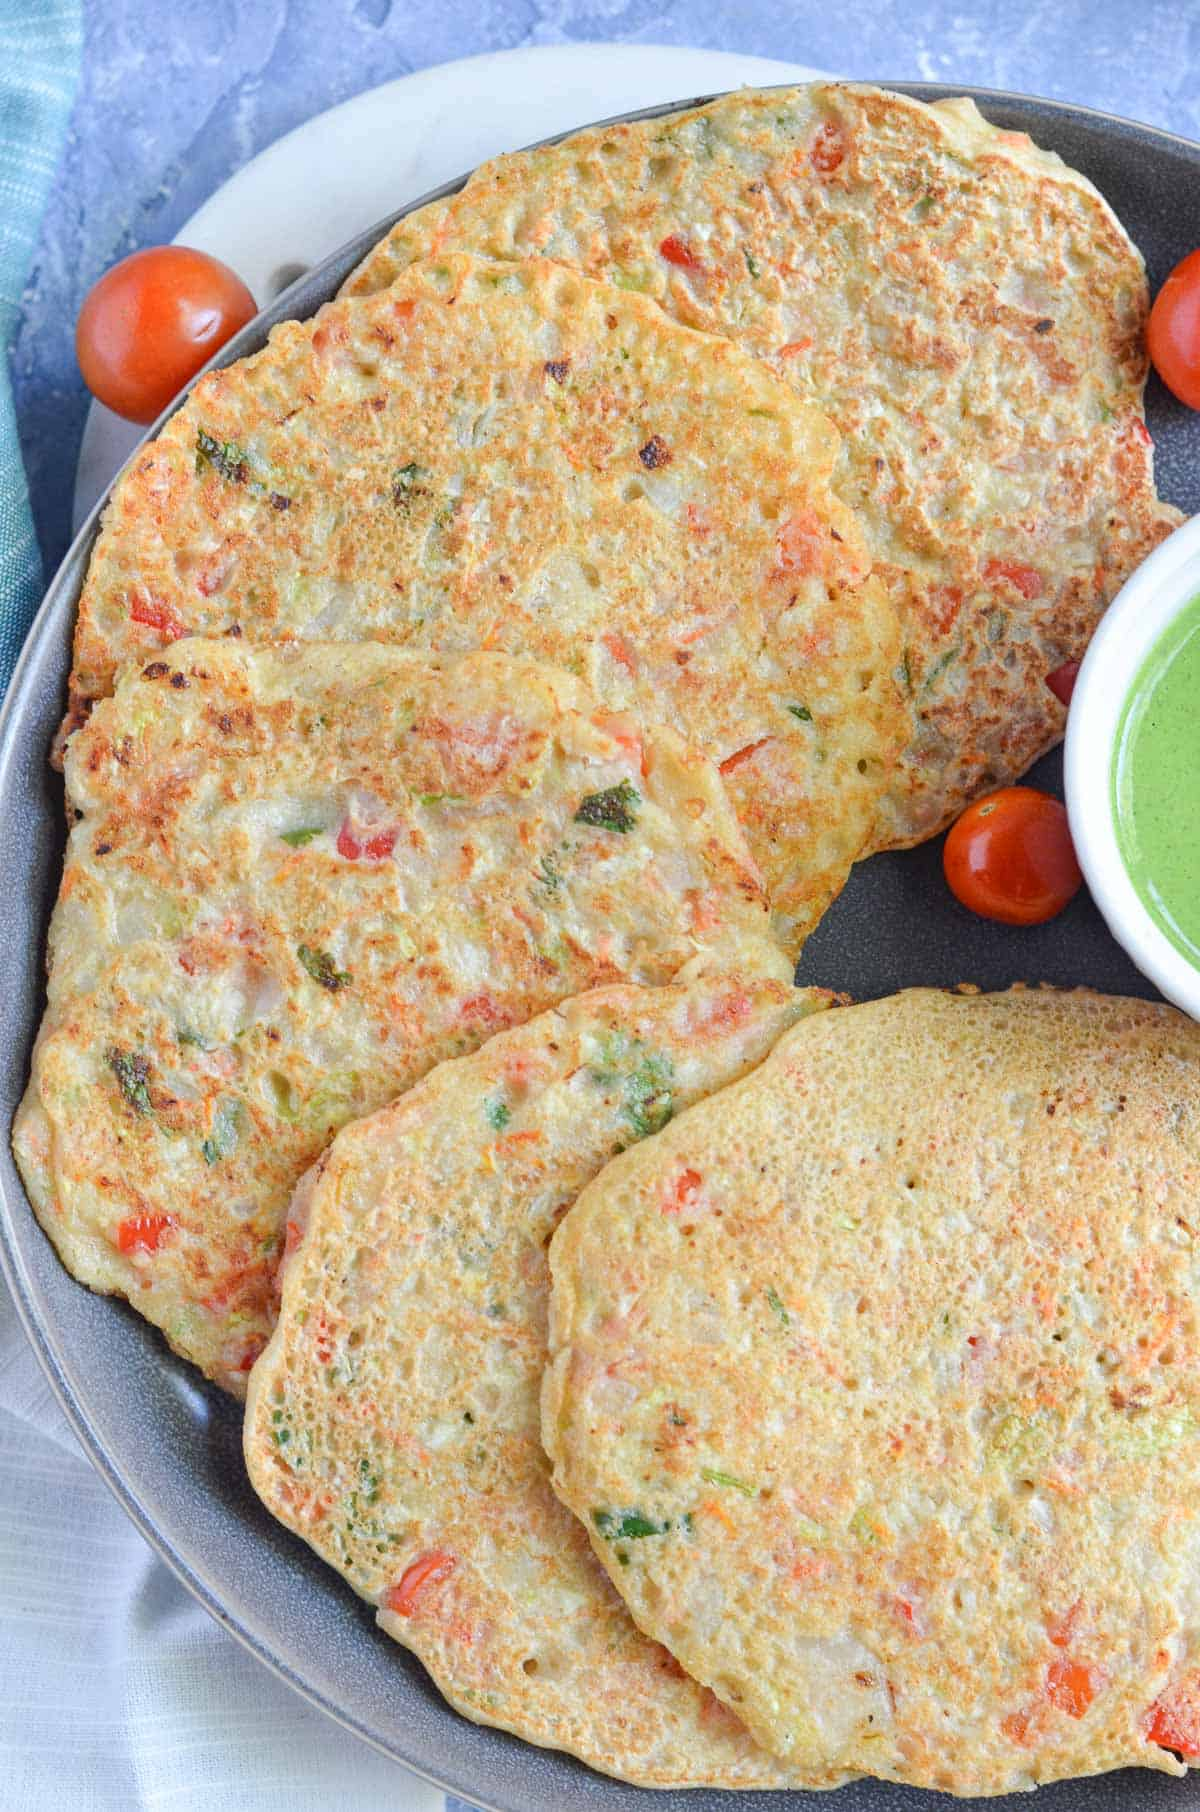 vegetable pancakes served in black plate with tomatoes & green chutney.